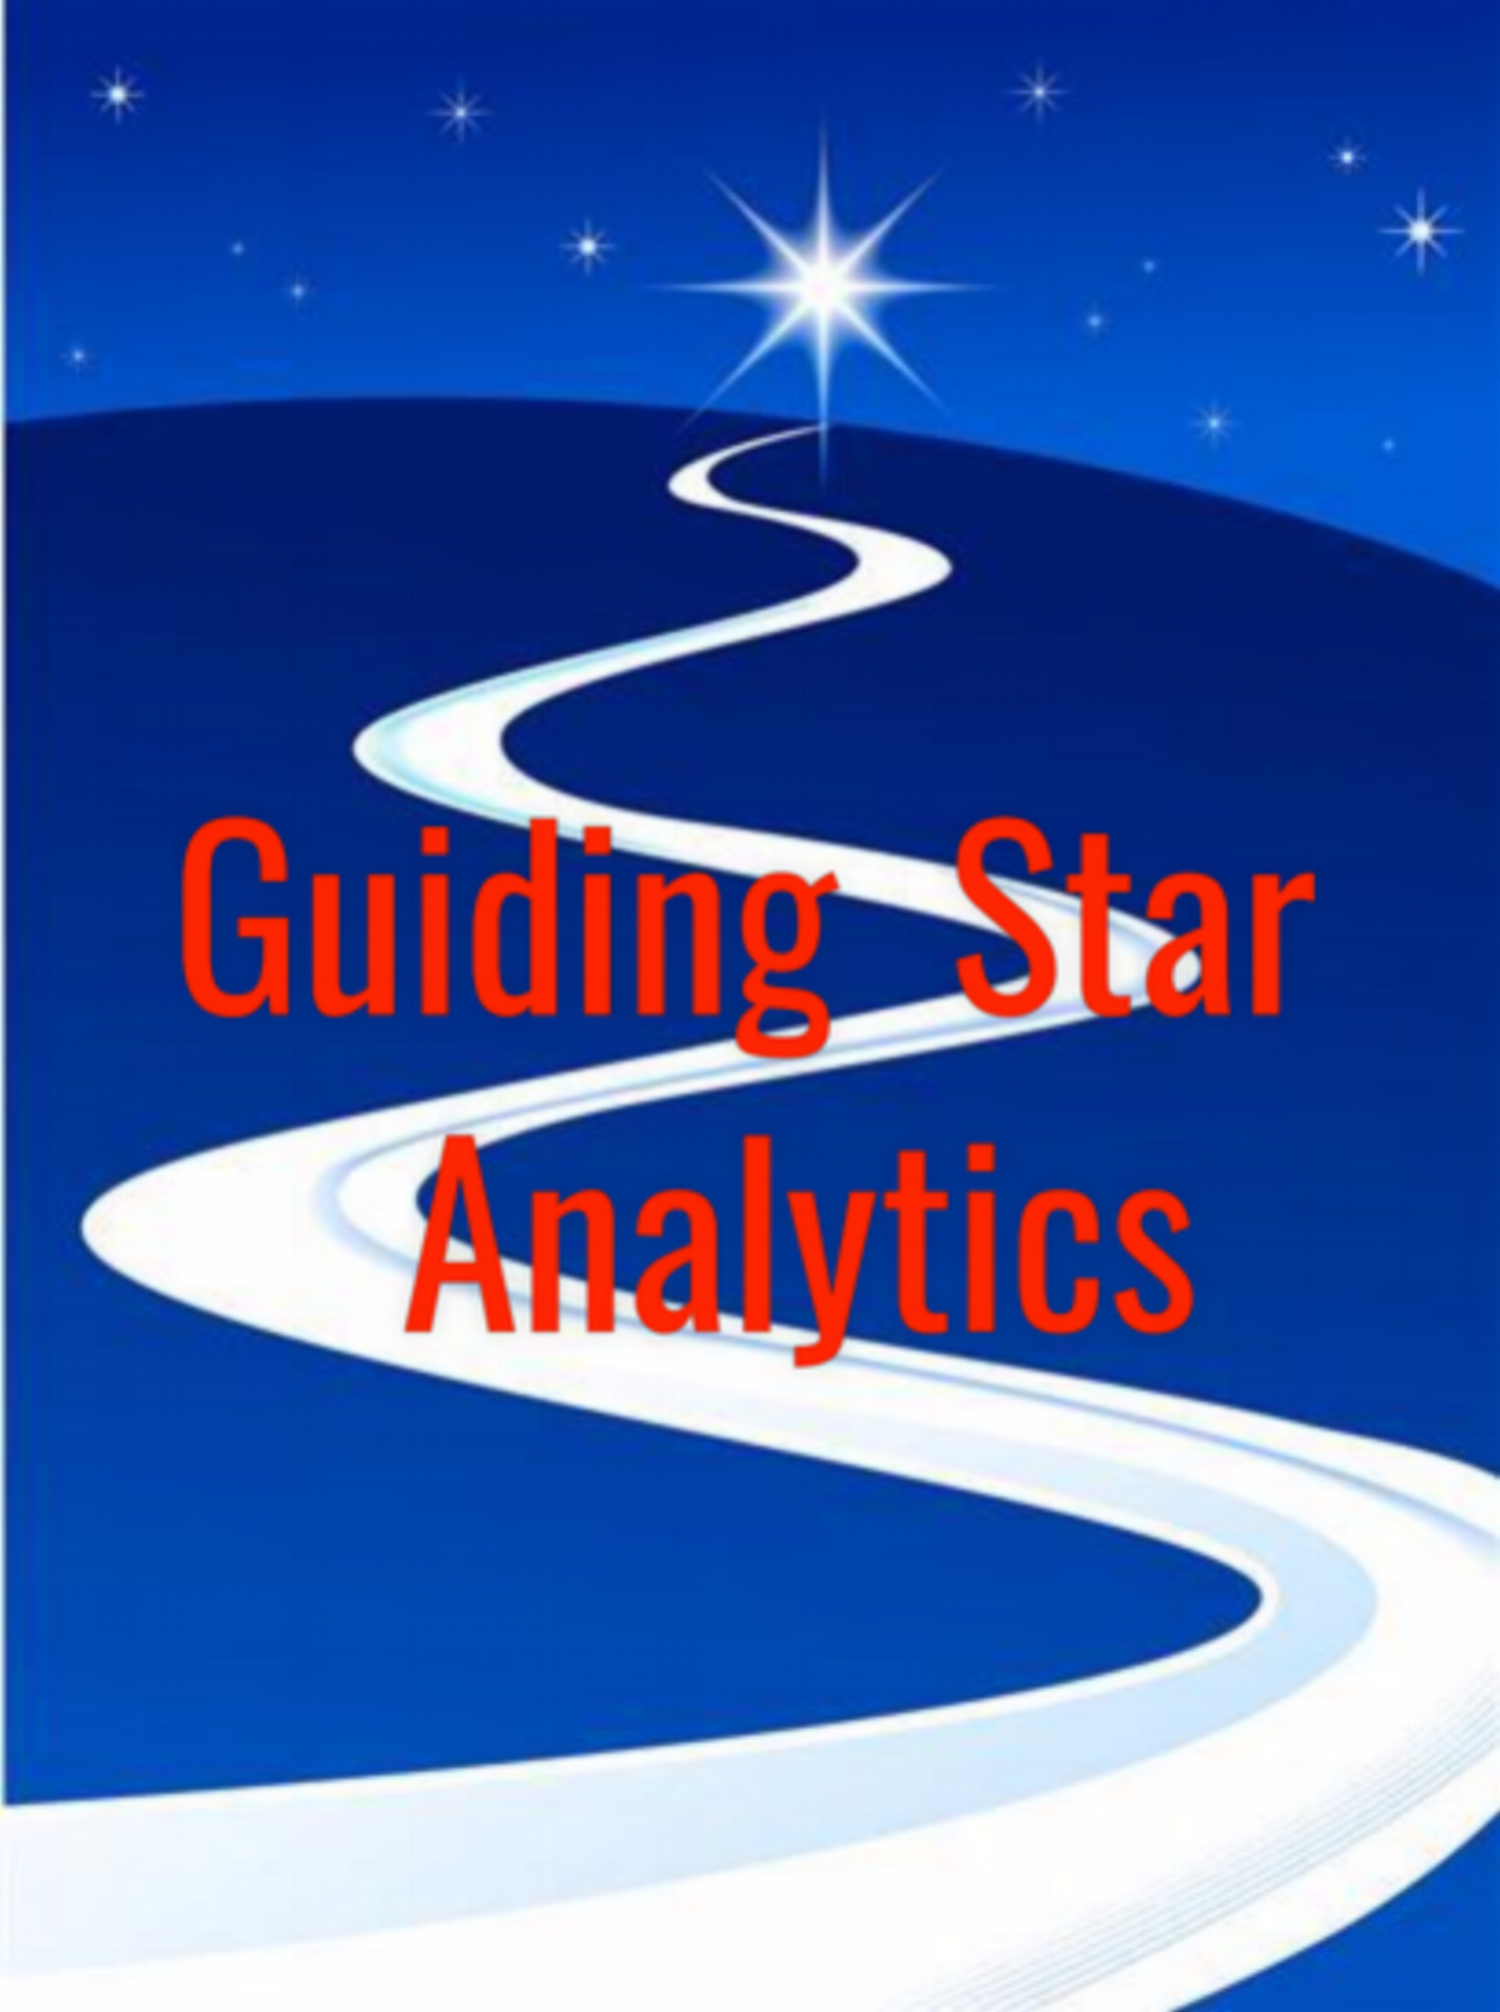 Guiding Star Analytics LLC